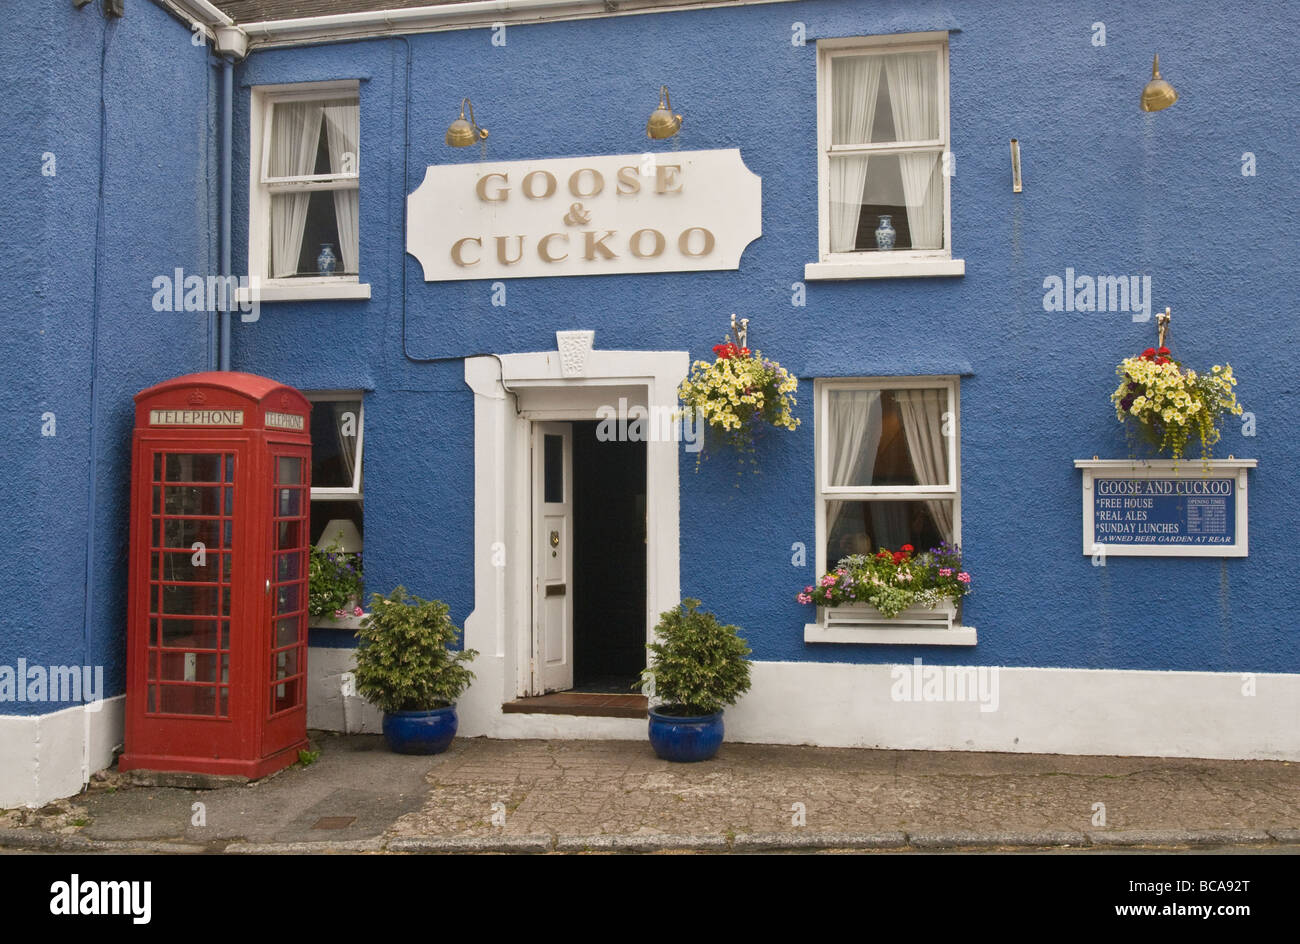 The Goose and Cuckoo Pub in Llangadog Carmarthenshire Wales - Stock Image